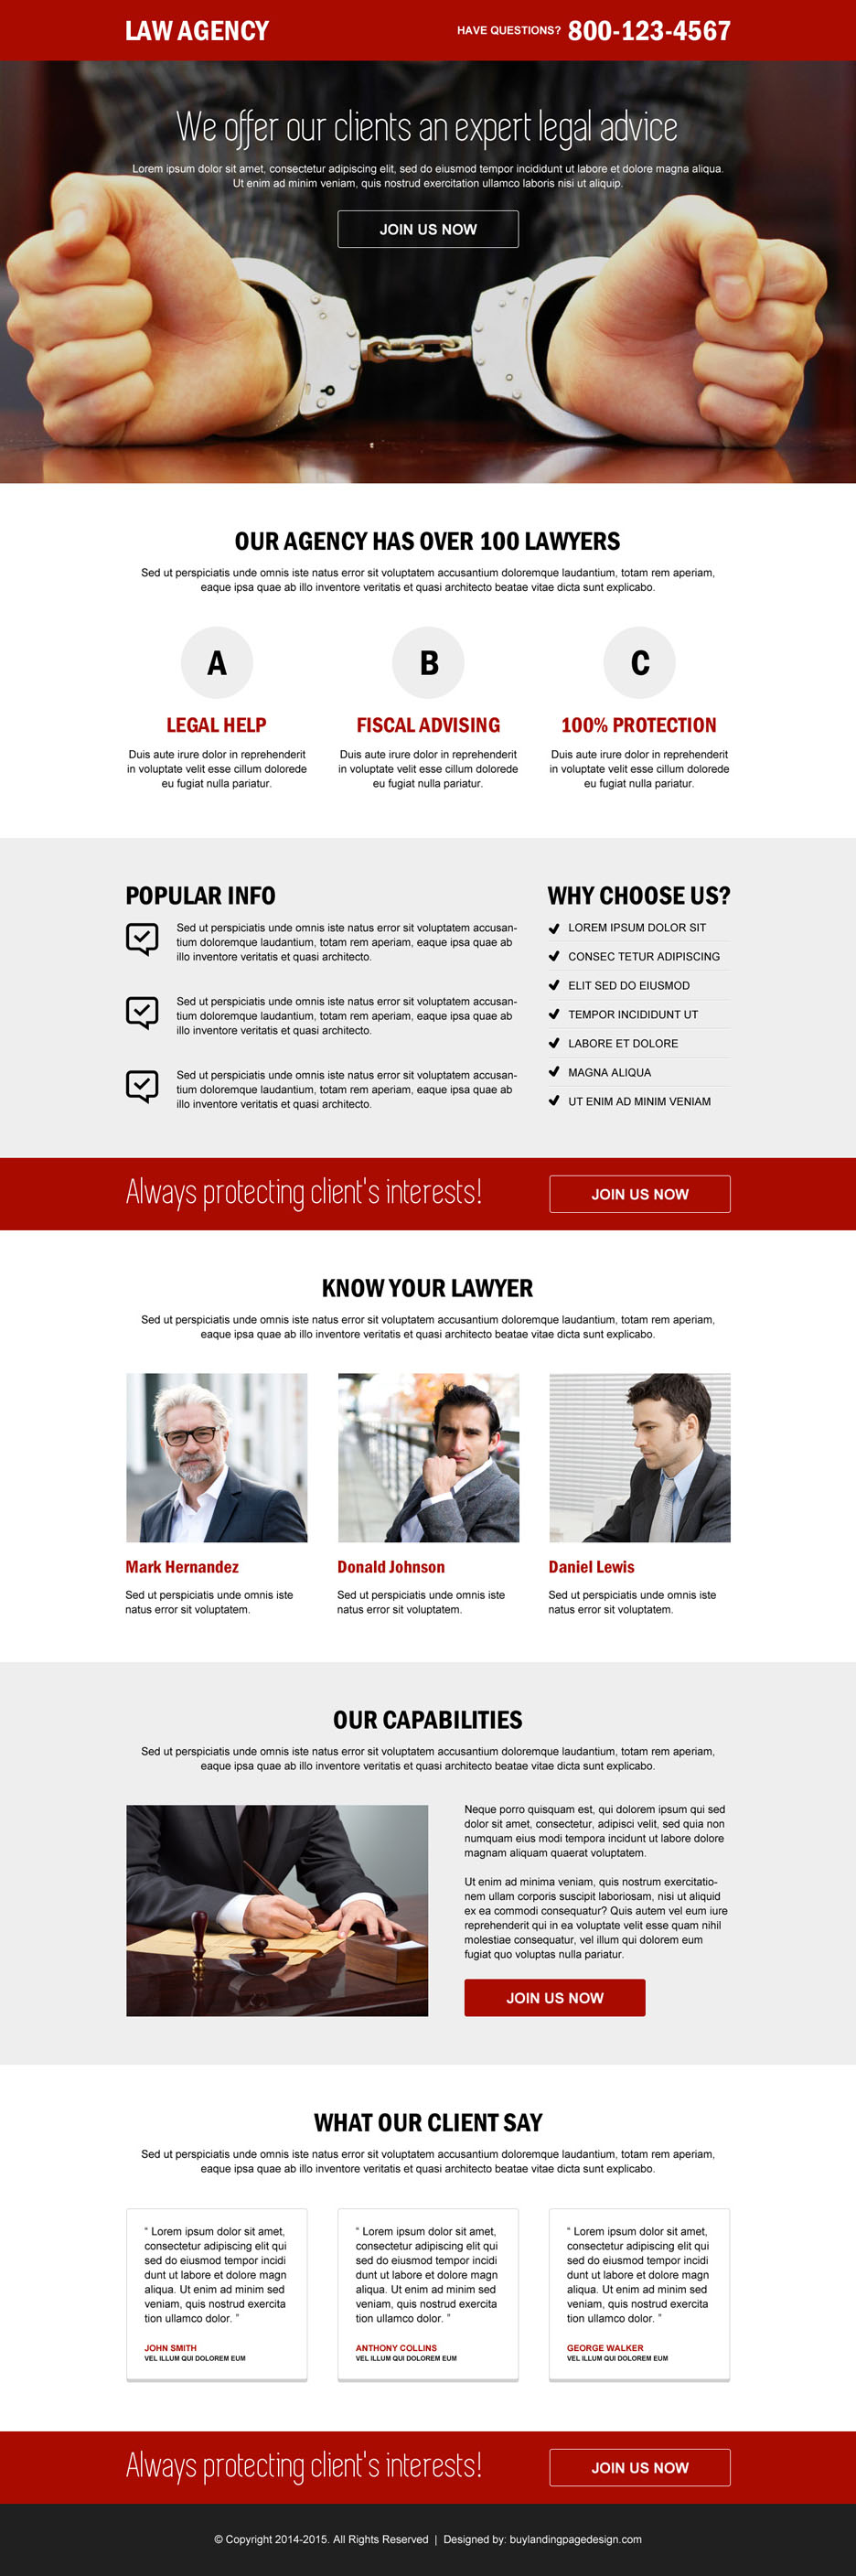 Purchase law agency call to action landing page design templates to boost your law agency leads and sales from https://www.buylandingpagedesign.com/buy/law-agency-call-to-action-landing-page-design/1382